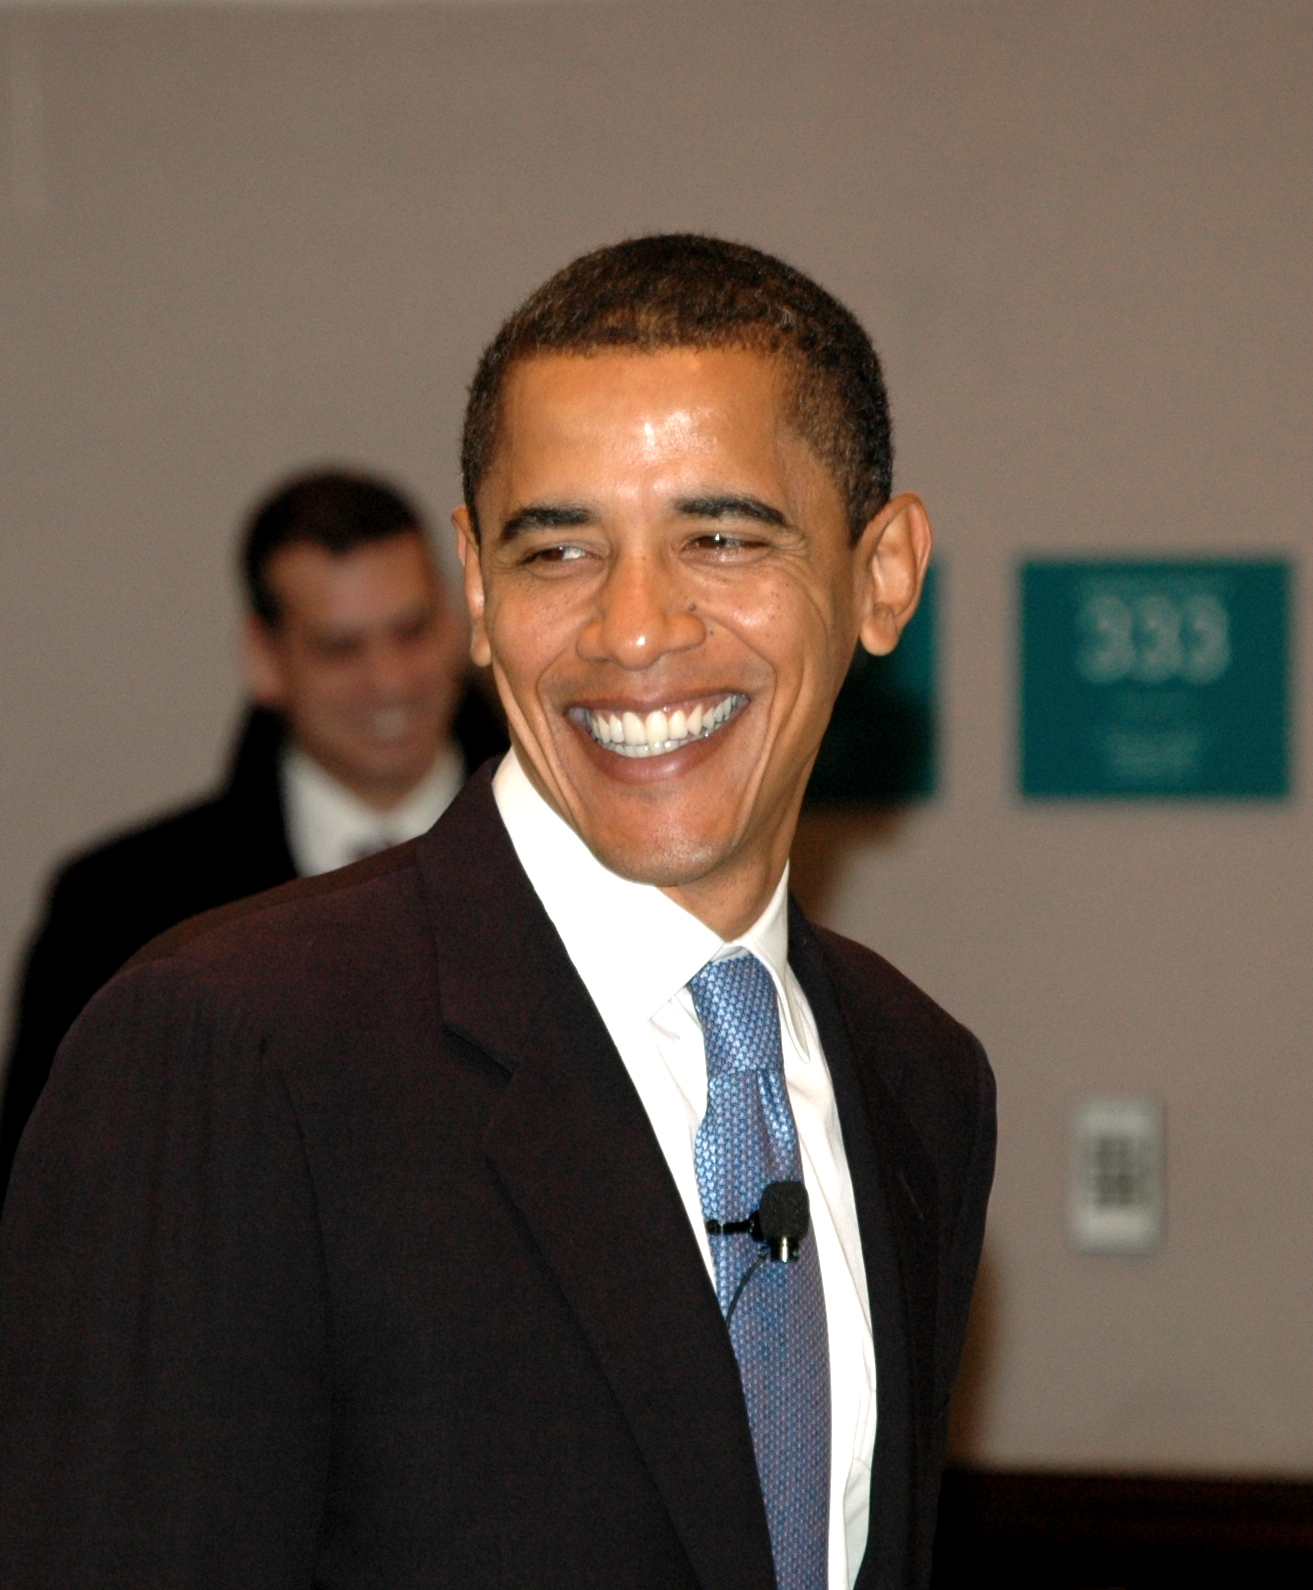 This Week In Illinois History: Barack Obama Steps Onto The National Stage (July 27, 2004)